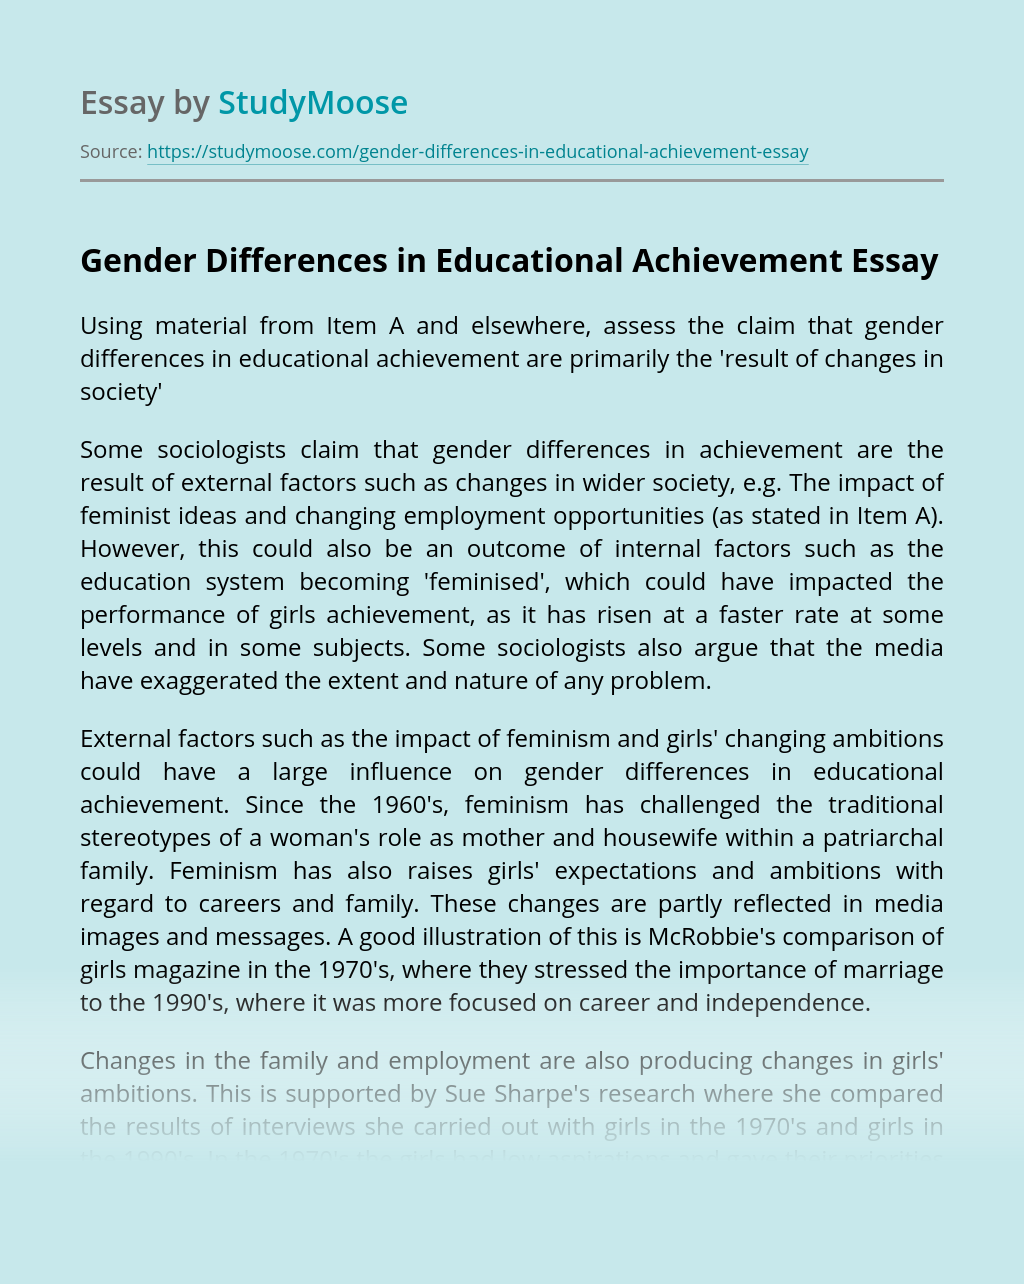 Gender Differences in Educational Achievement